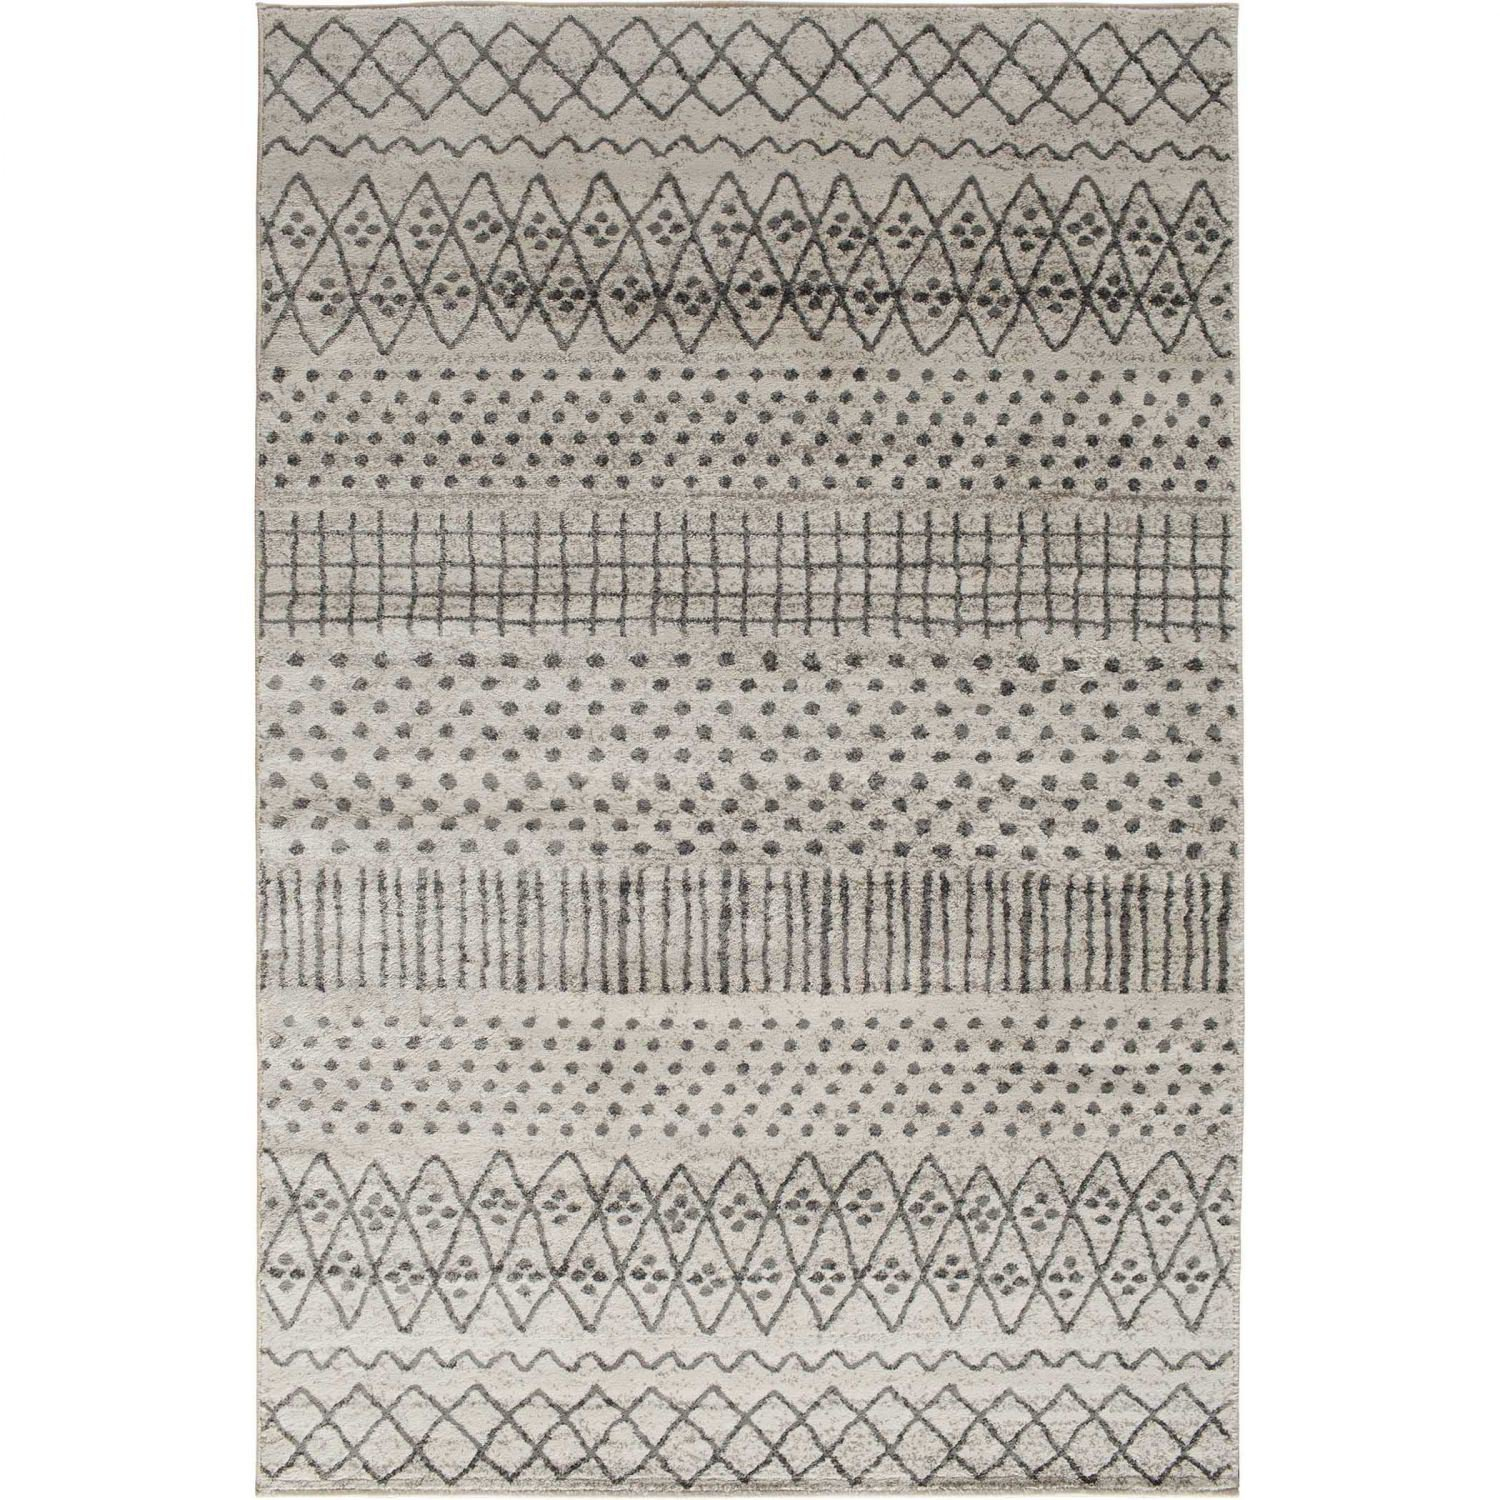 Corso Alvis Birch Rug for Alvis Traditional Metal Wall Decor (Image 10 of 30)